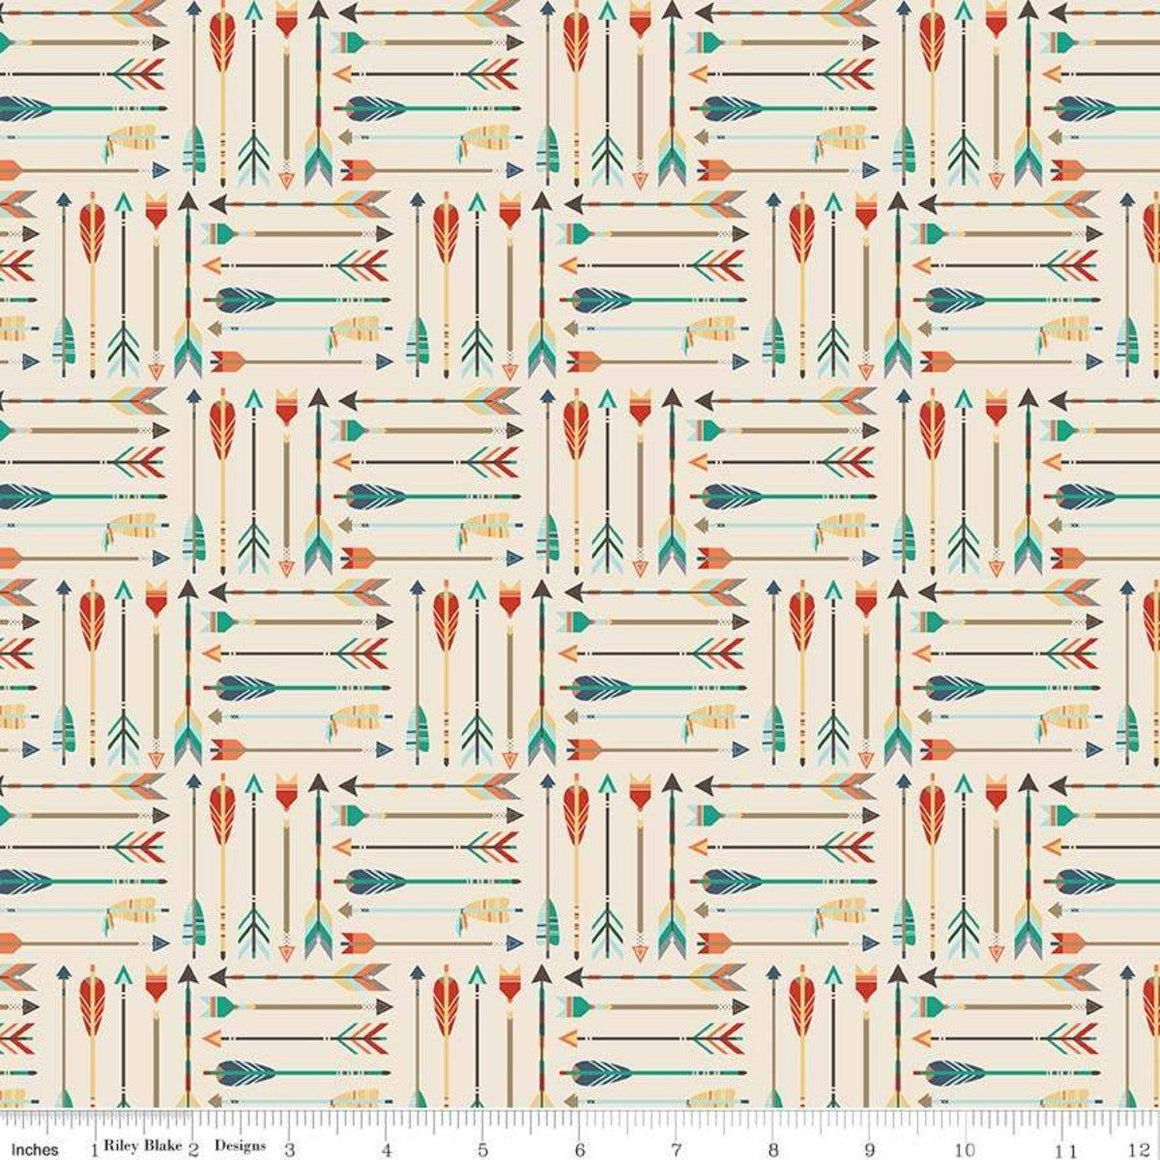 Cream Rust Orange Teal and Red Adventure Arrow Jersey Knit Fabric by Riley Blake Designs, 1 Yard in Cream - Raspberry Creek Fabrics